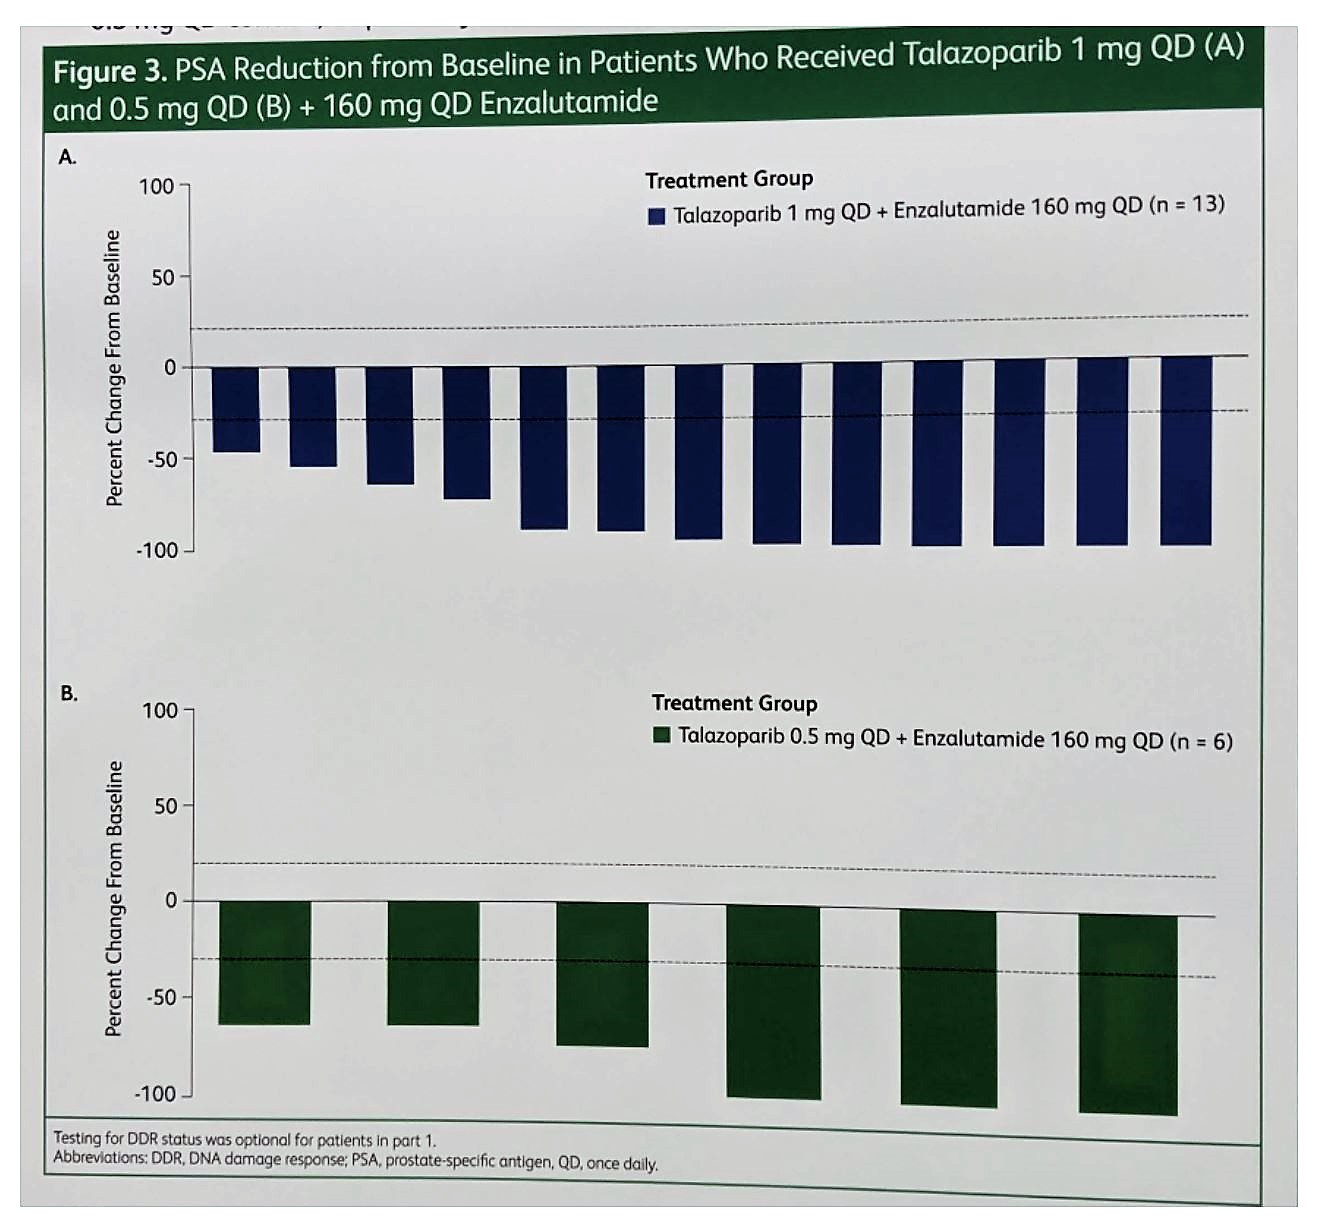 ASCO 2019 PSA reduction from baseline